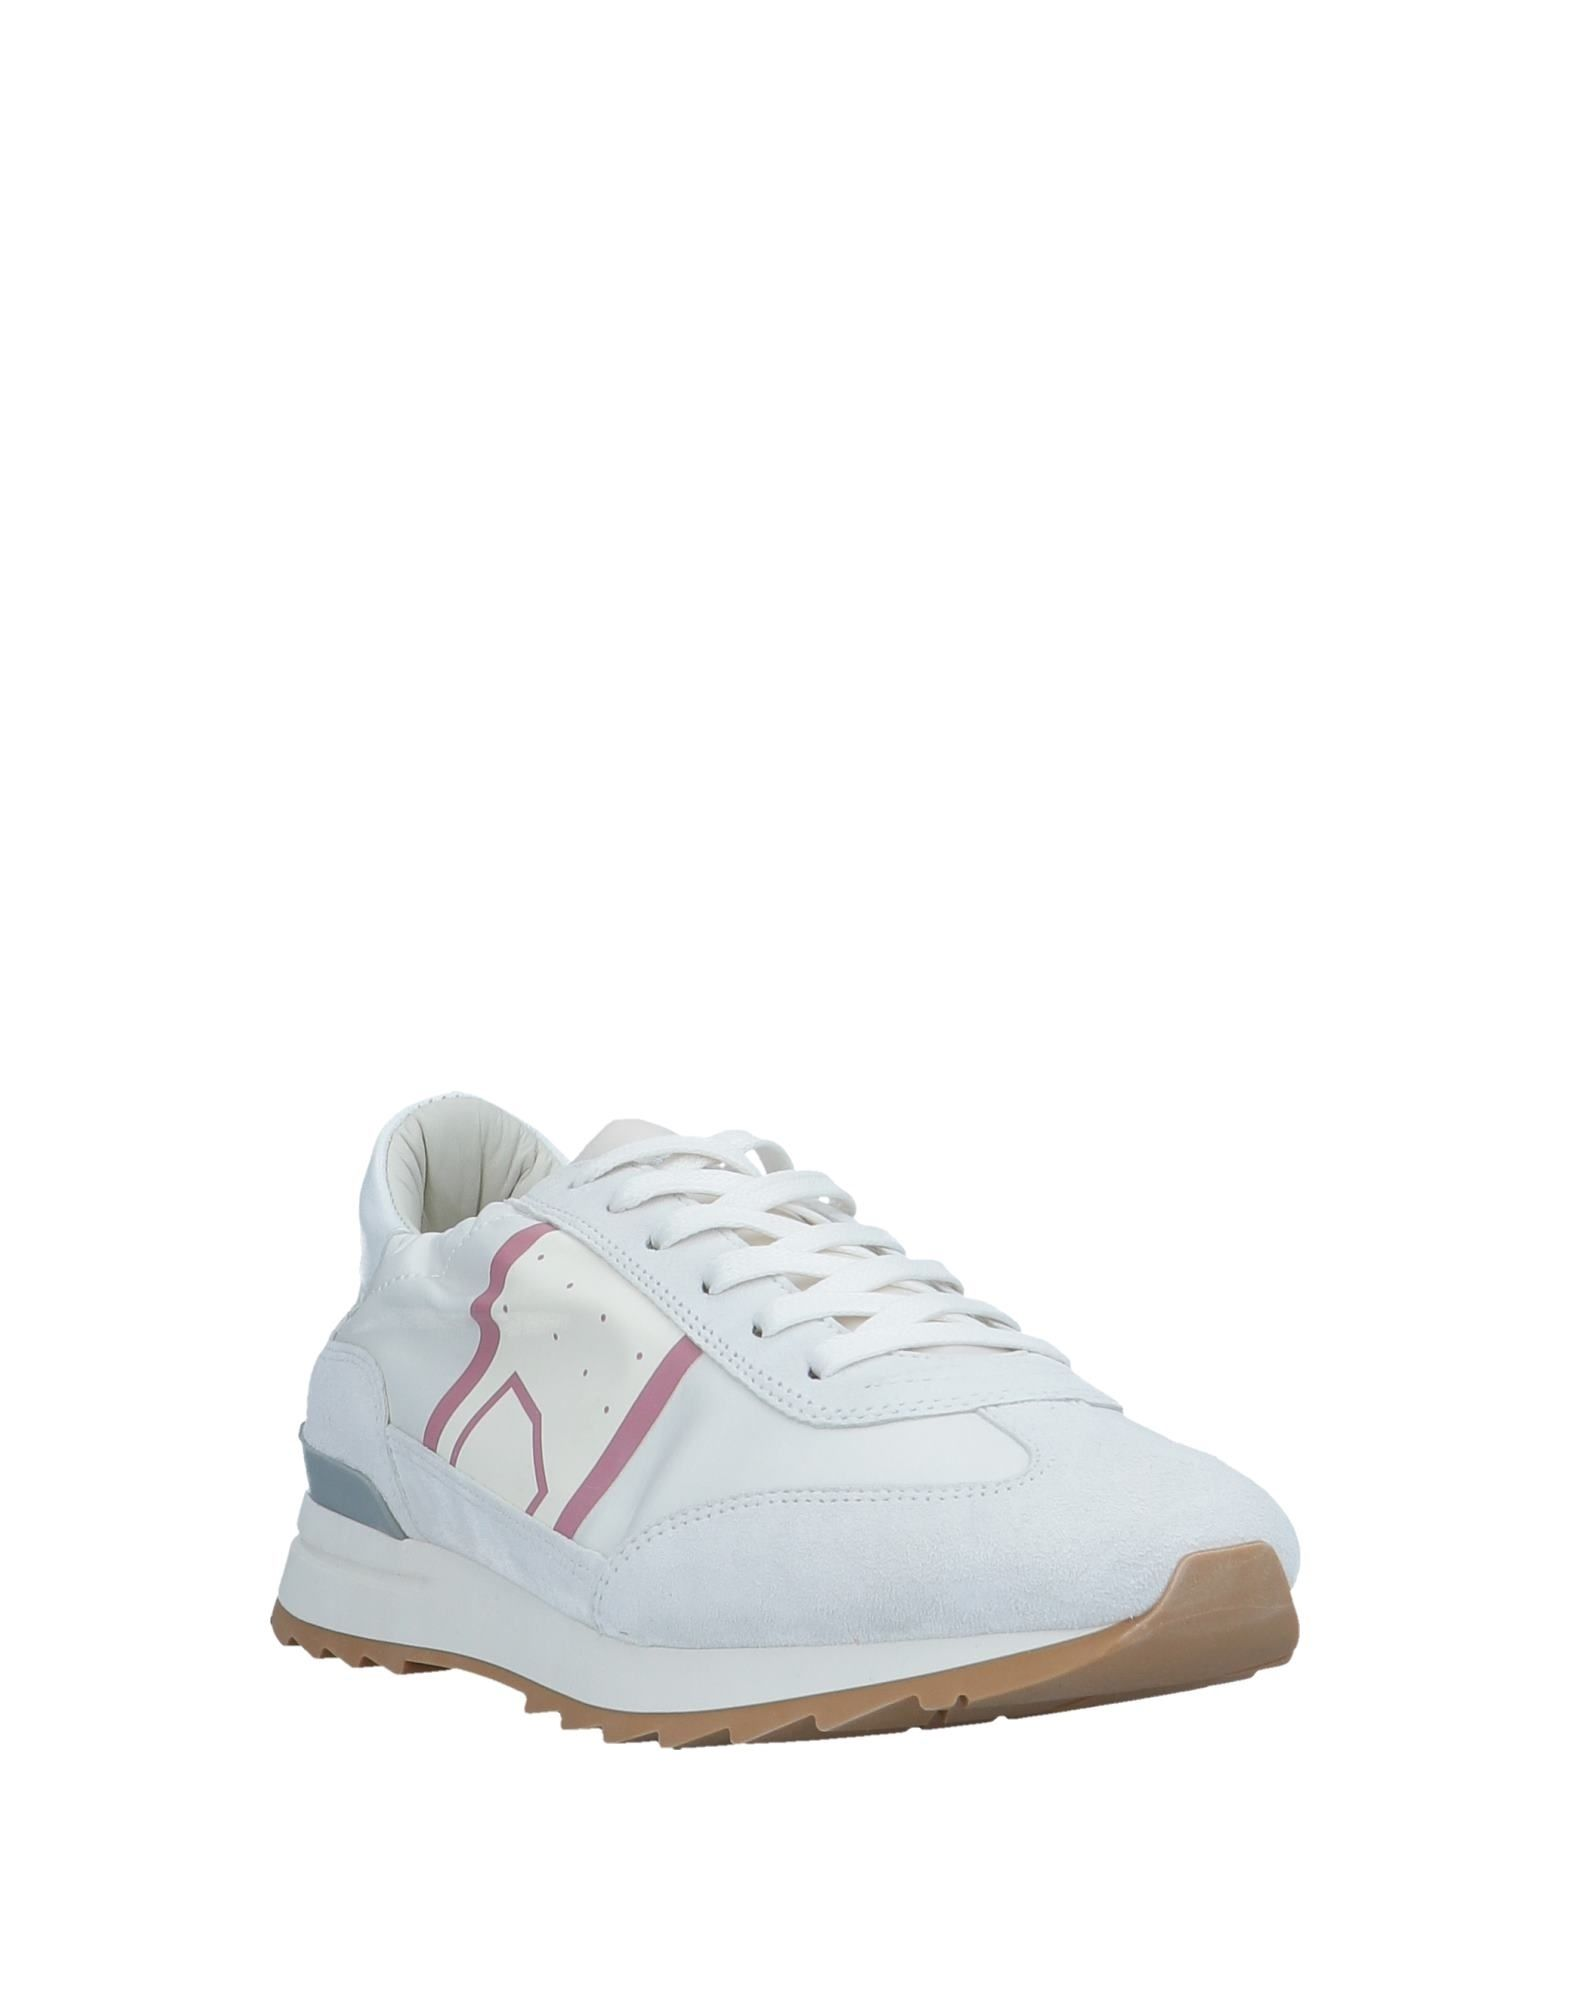 Philippe Model Sneakers - Women on Philippe Model Sneakers online on Women  Canada - 11571235EE fbe9f3